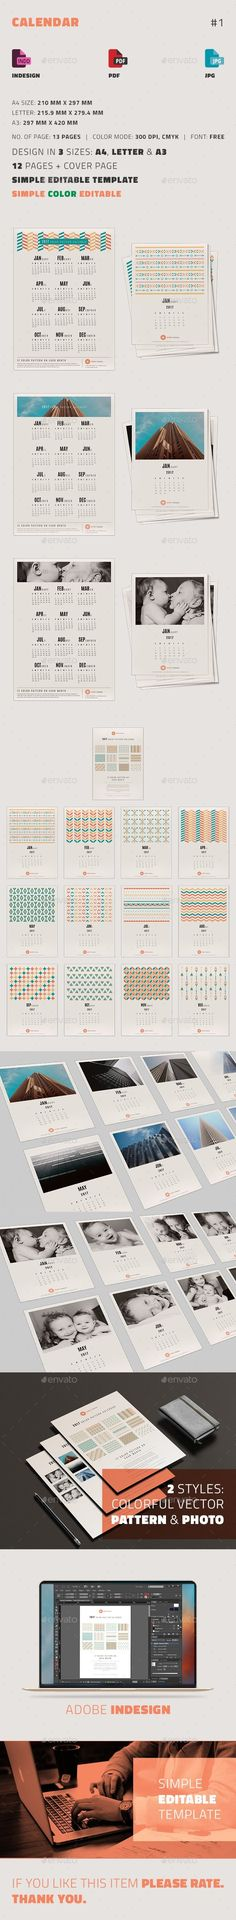 Printable Calendar 2017 - 2018, Desk Calendar PSD Download - Indesign Calendar Template